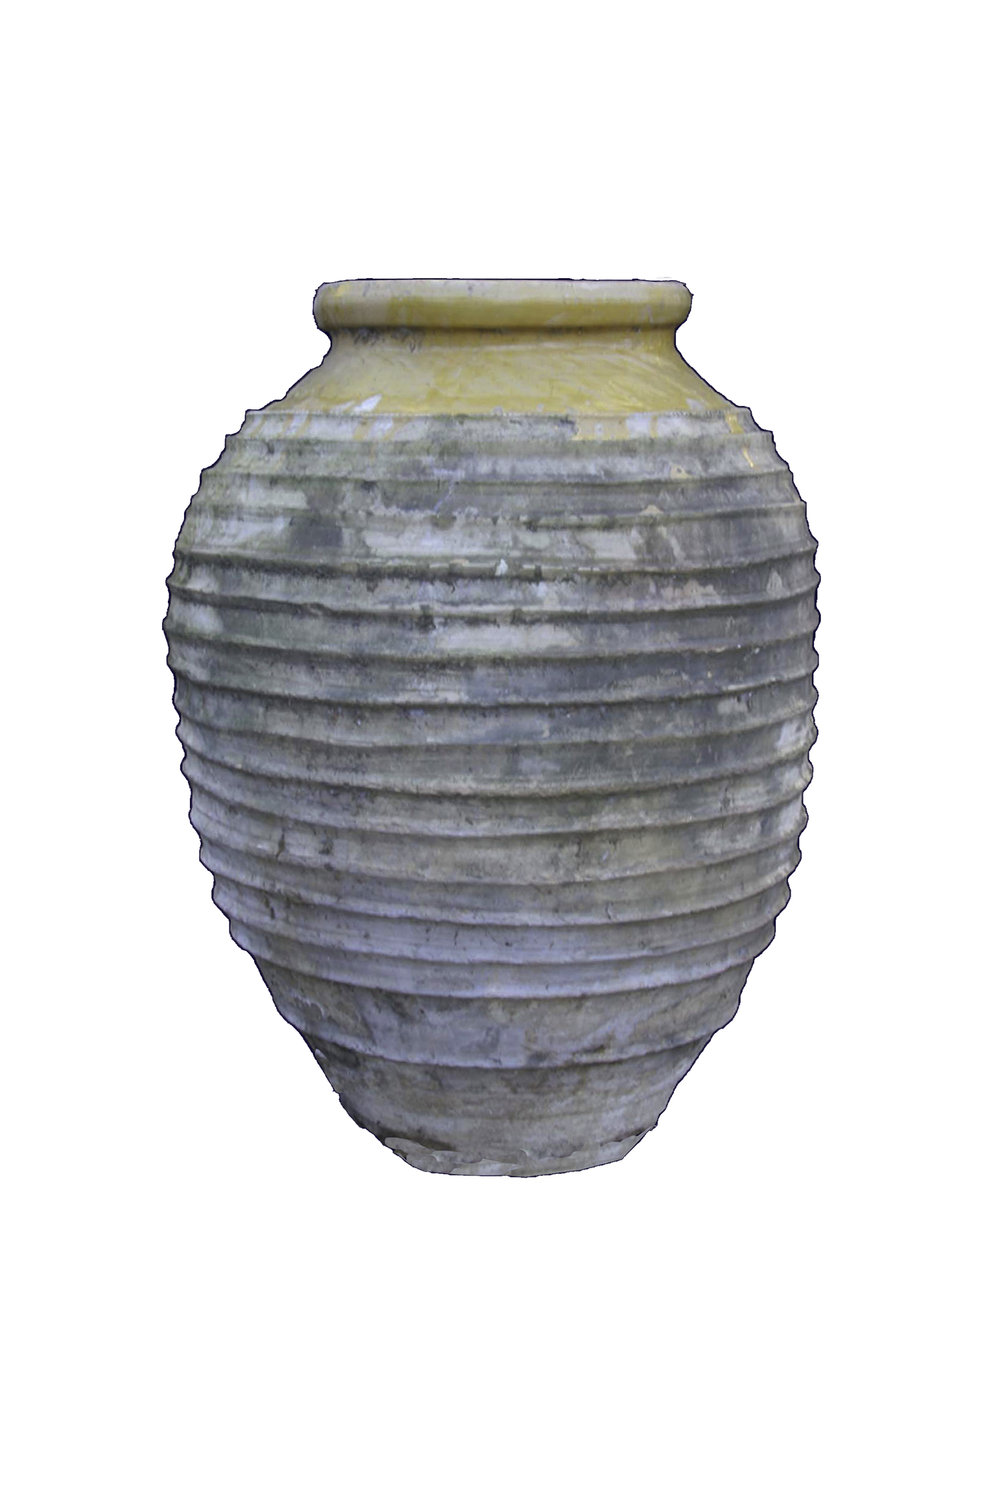 100-150 year old oil jar from Greece. I've owned this 15 years and was told the gypsies brought it by donkey down the mountains to Athens.   H- 29in   OD-21in  ID-8.5in